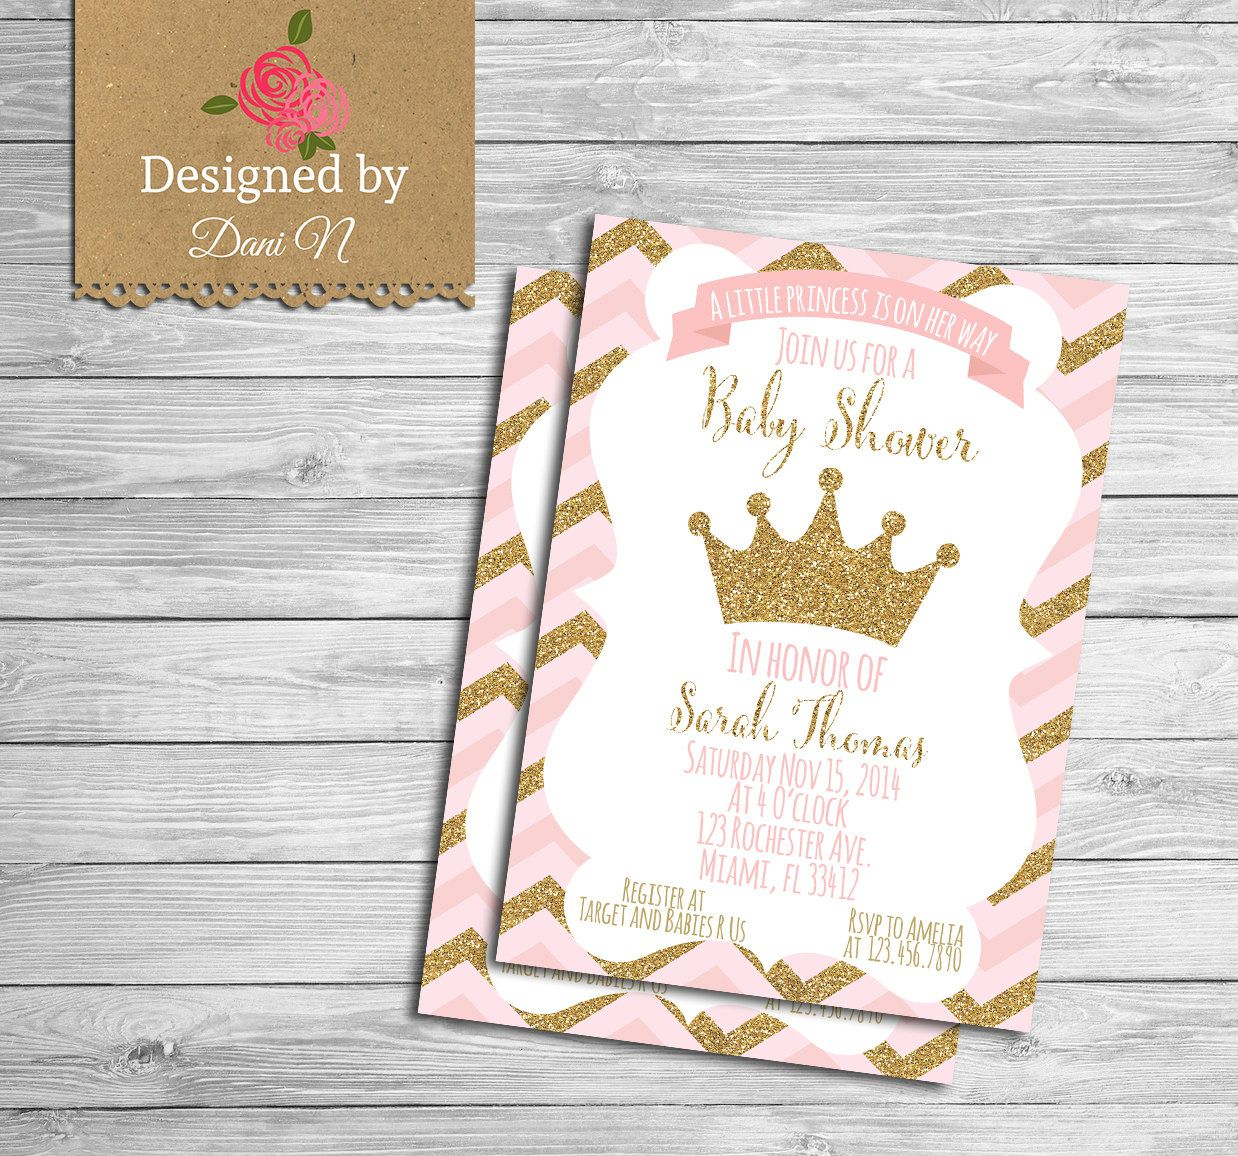 Baby shower invitation princess baby shower pink and gold crown new to designedbydanin on etsy baby shower invitation princess baby shower pink and gold crown filmwisefo Images